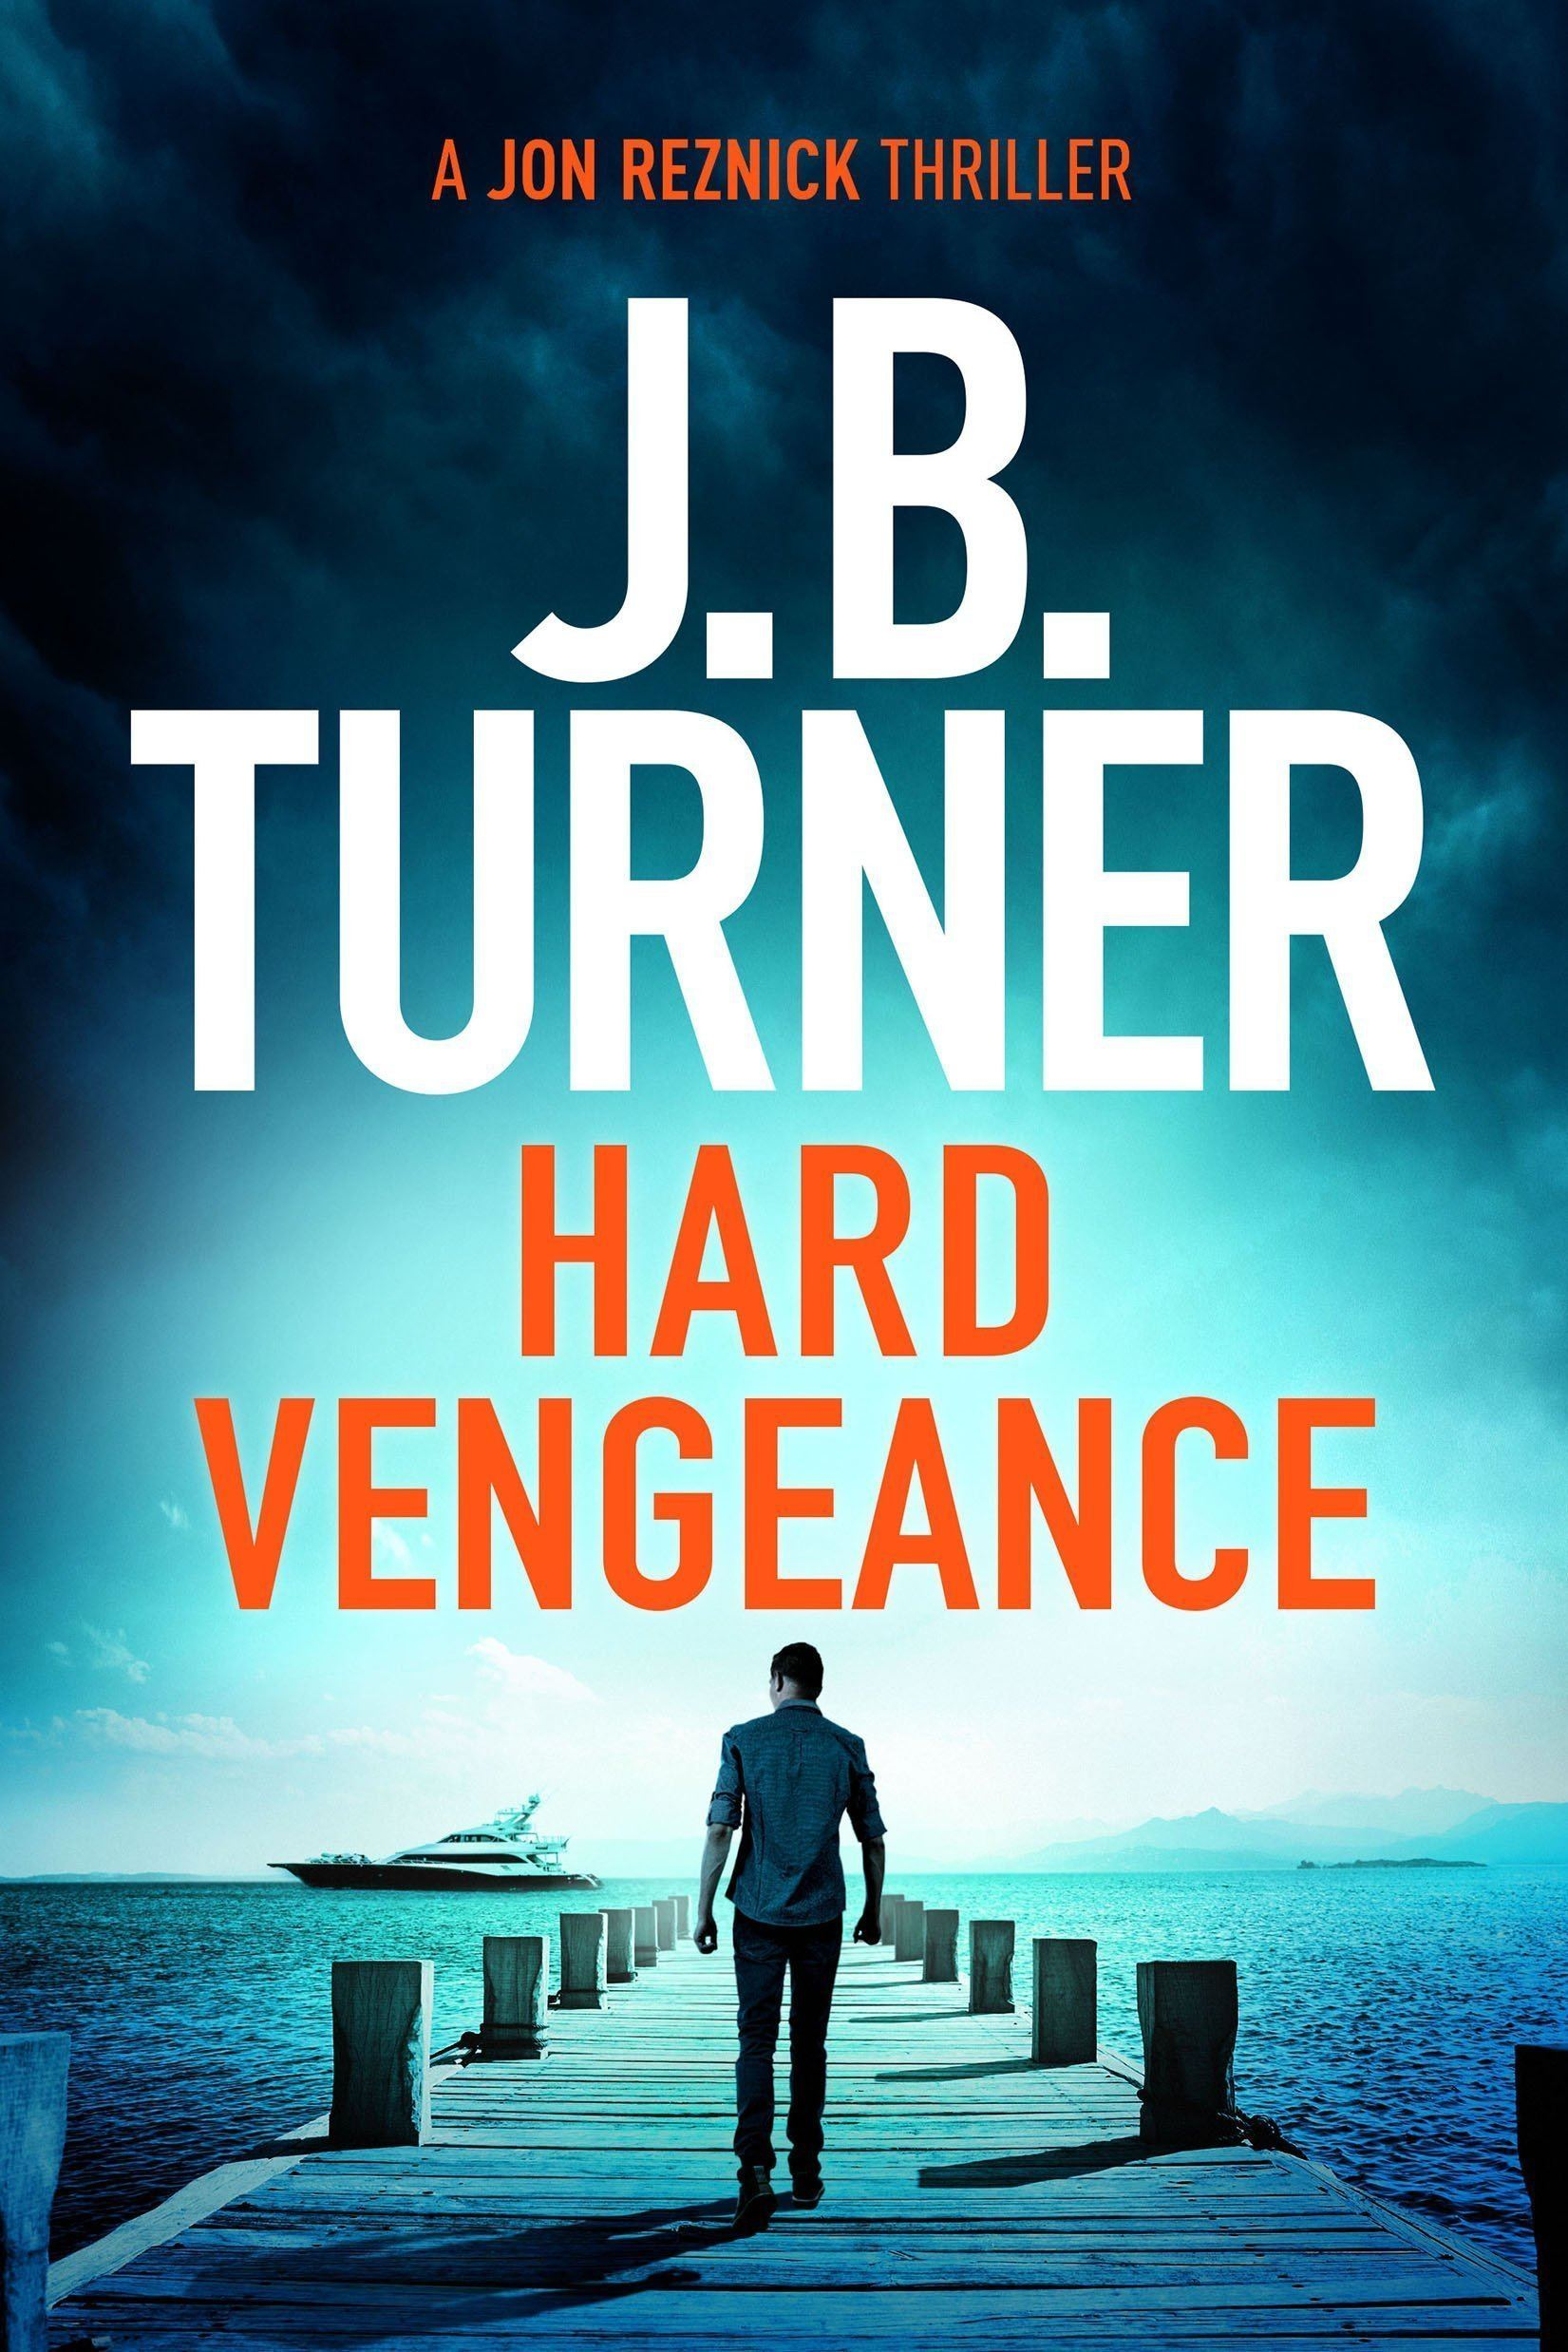 Book cover for J.B. Turner's thriller Hard Vengeance